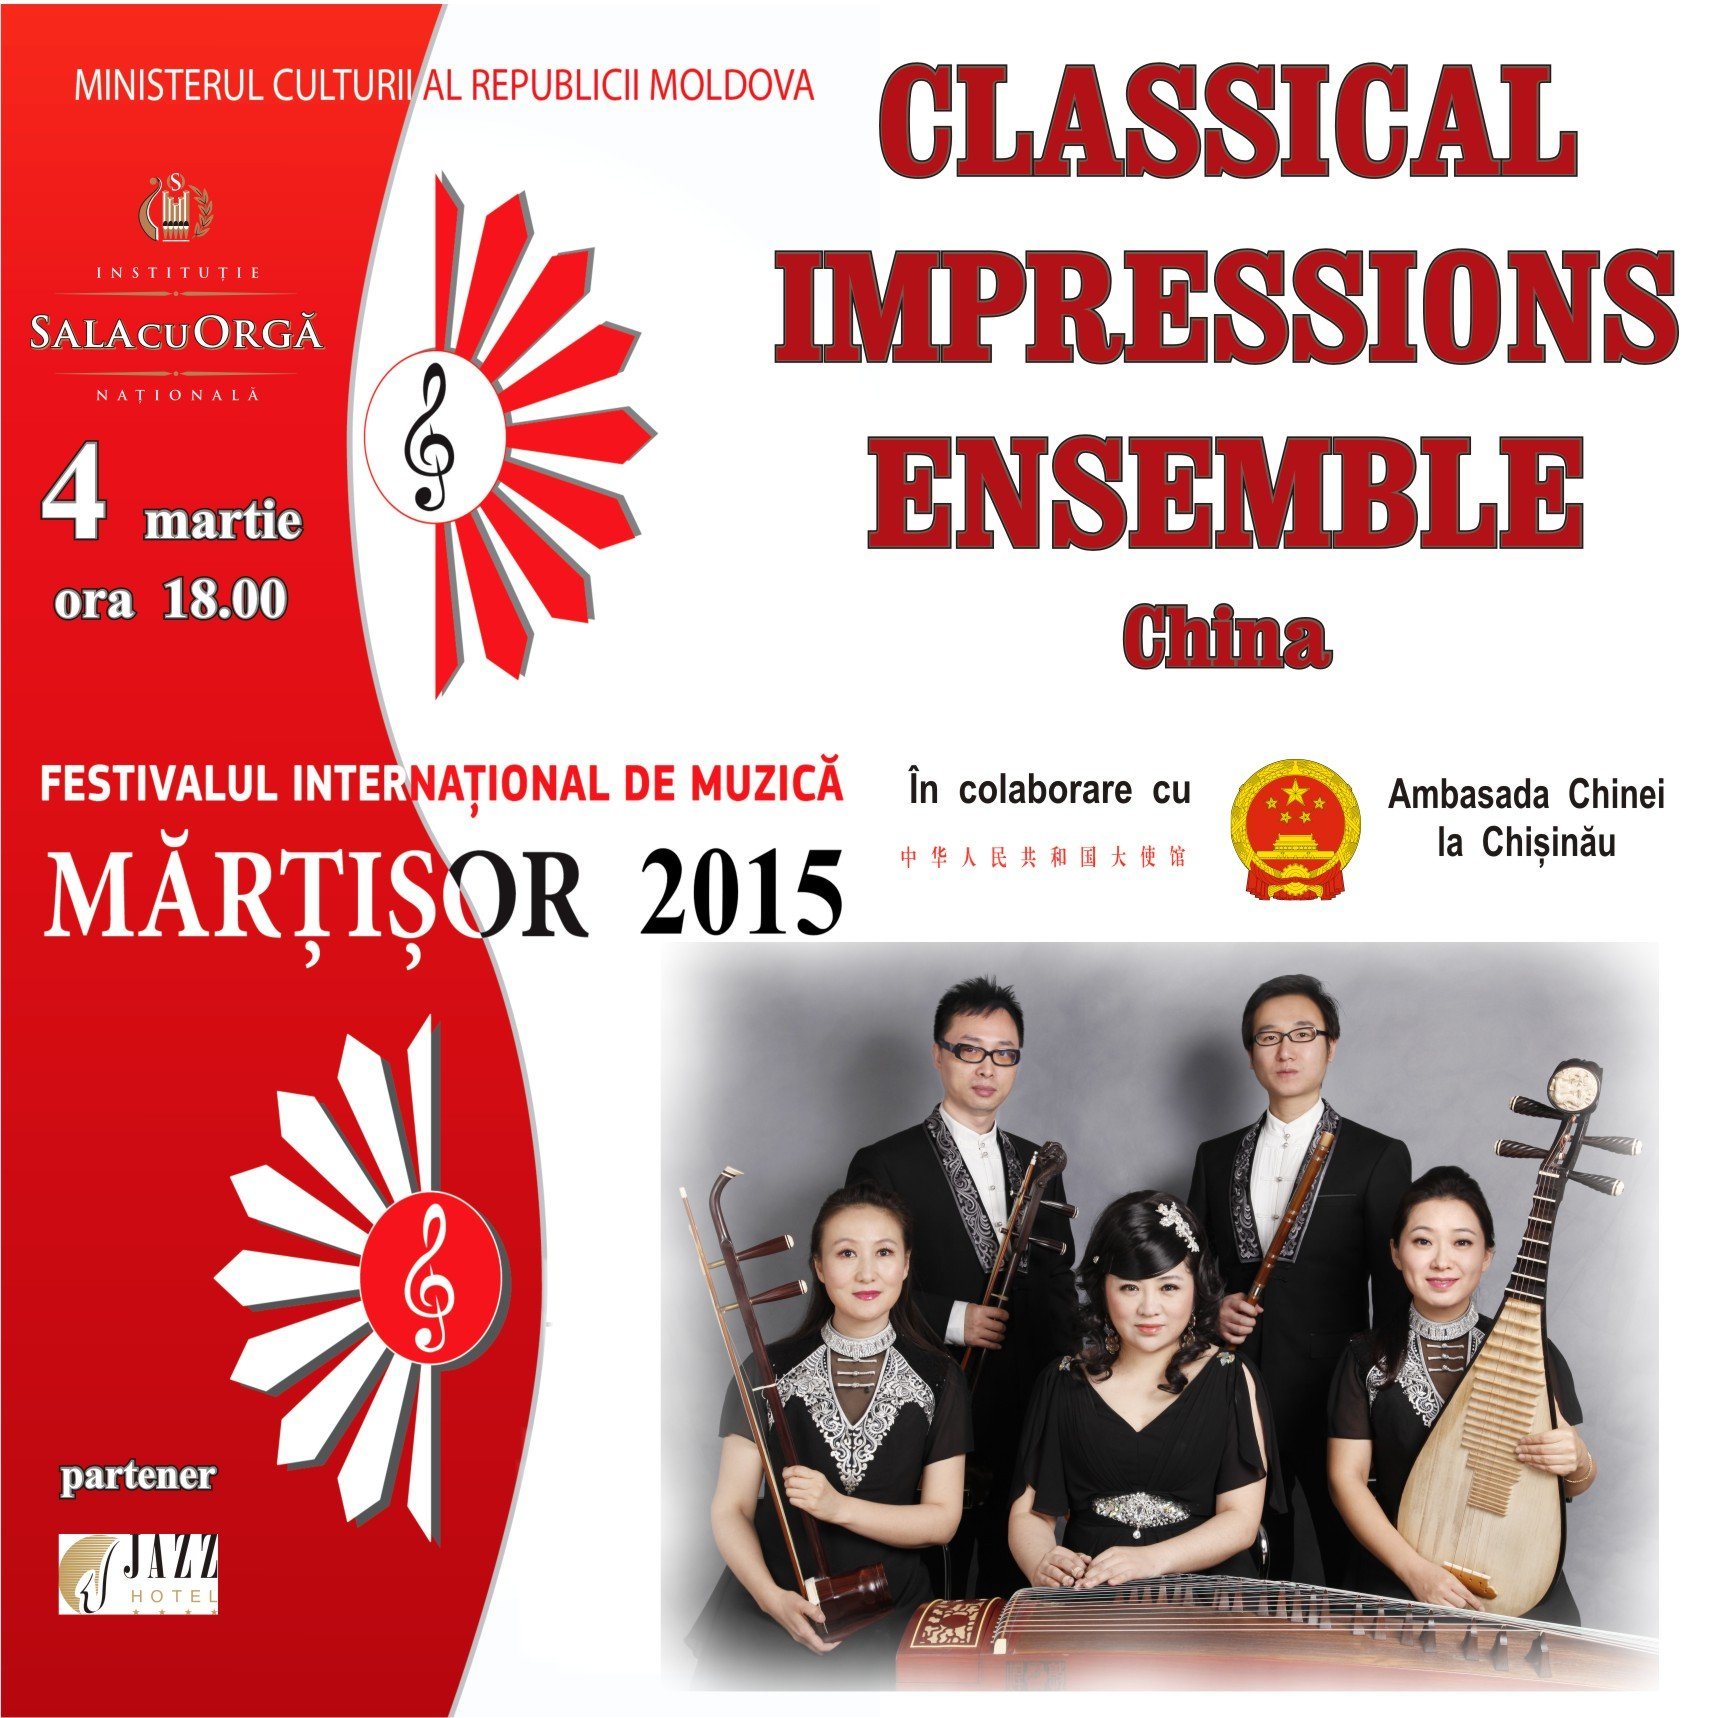 Classical Impressions Ensemble